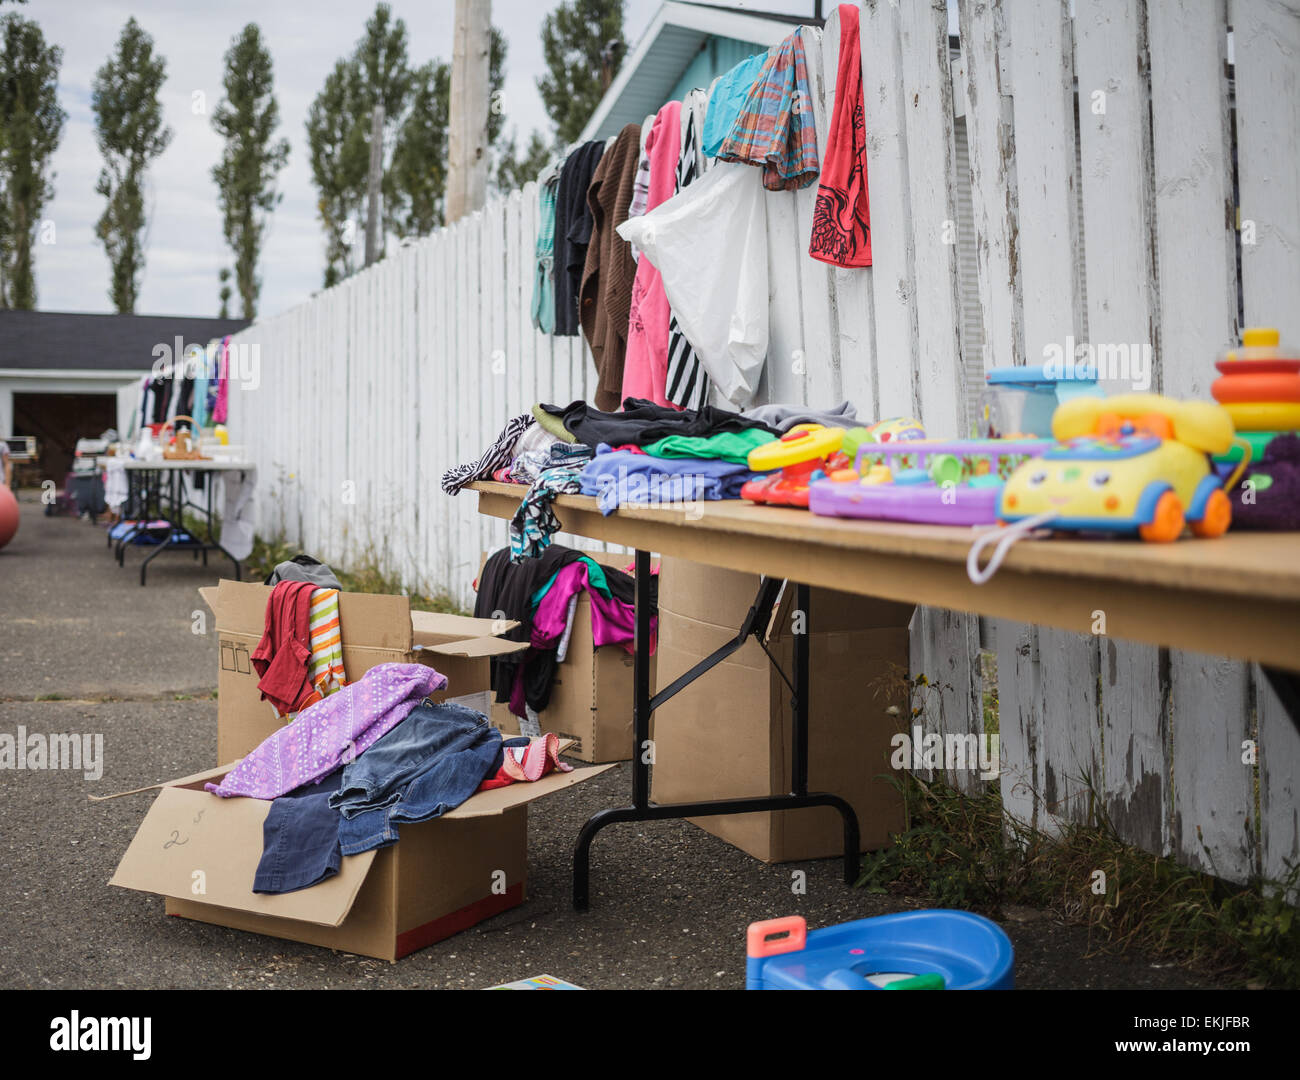 Garage Sale with lot of Items - all Logo removed. - Stock Image